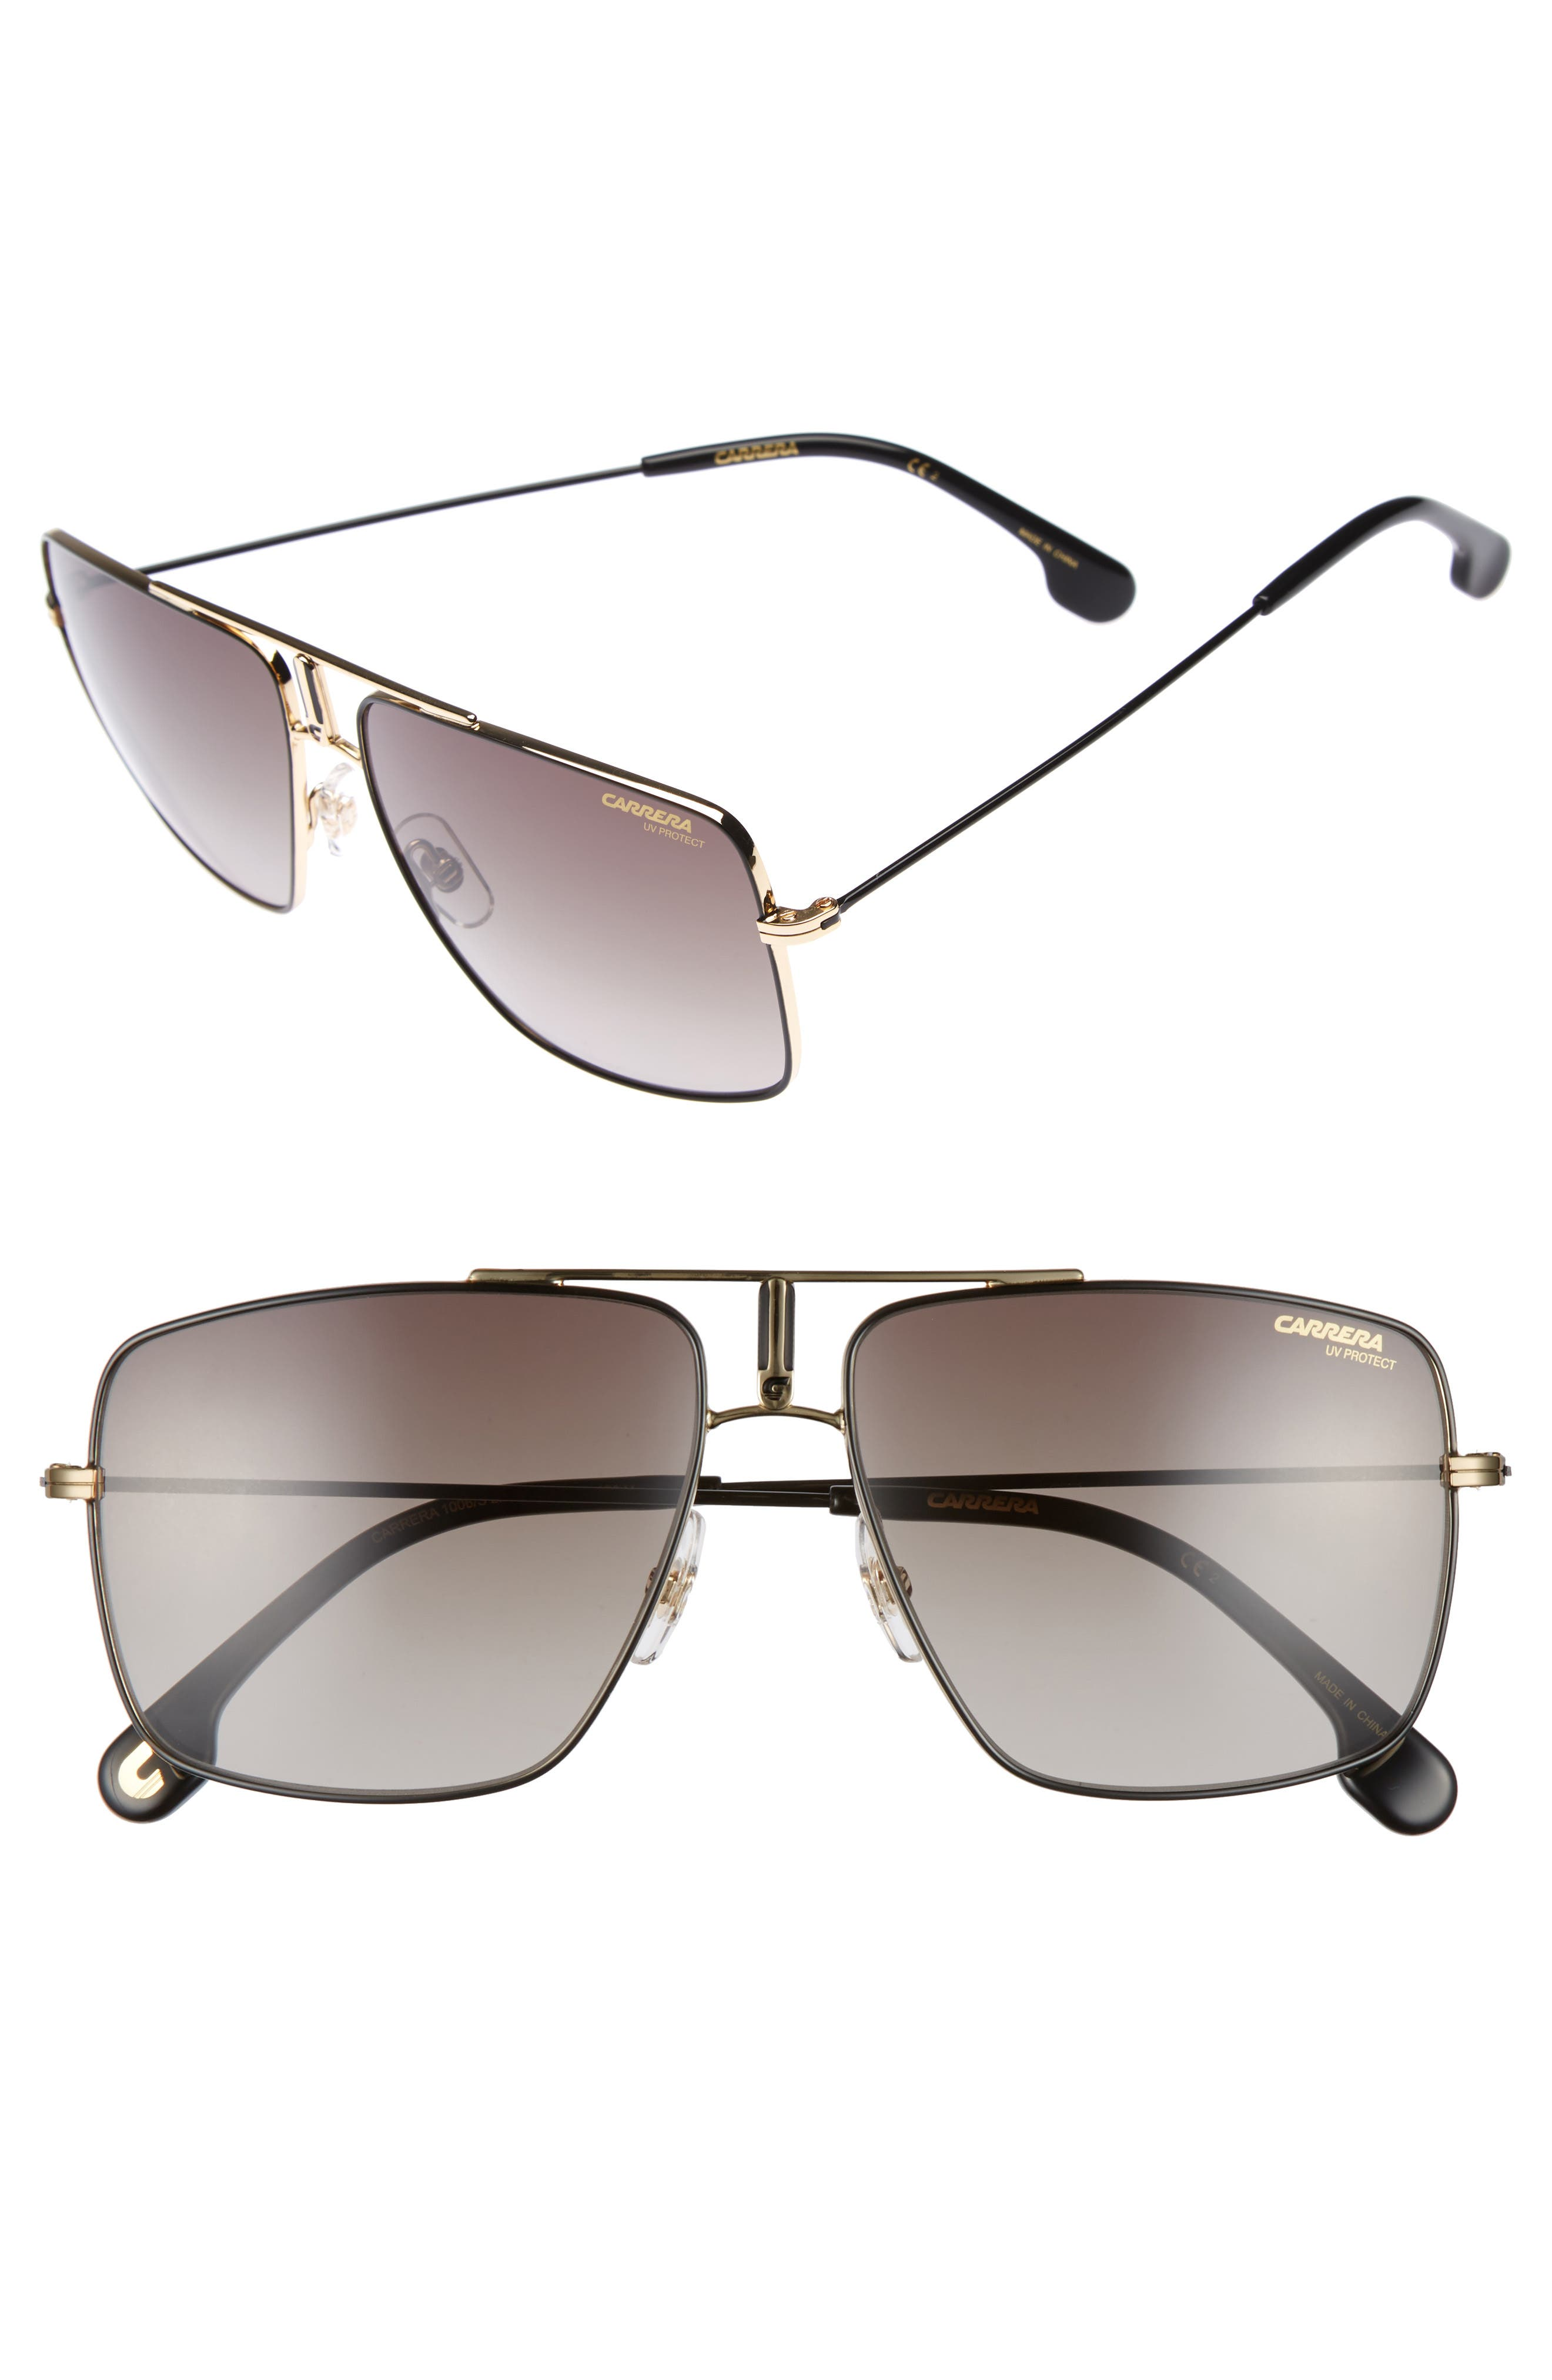 Carrera 60mm Aviator Sunglasses,                         Main,                         color, Black Gold